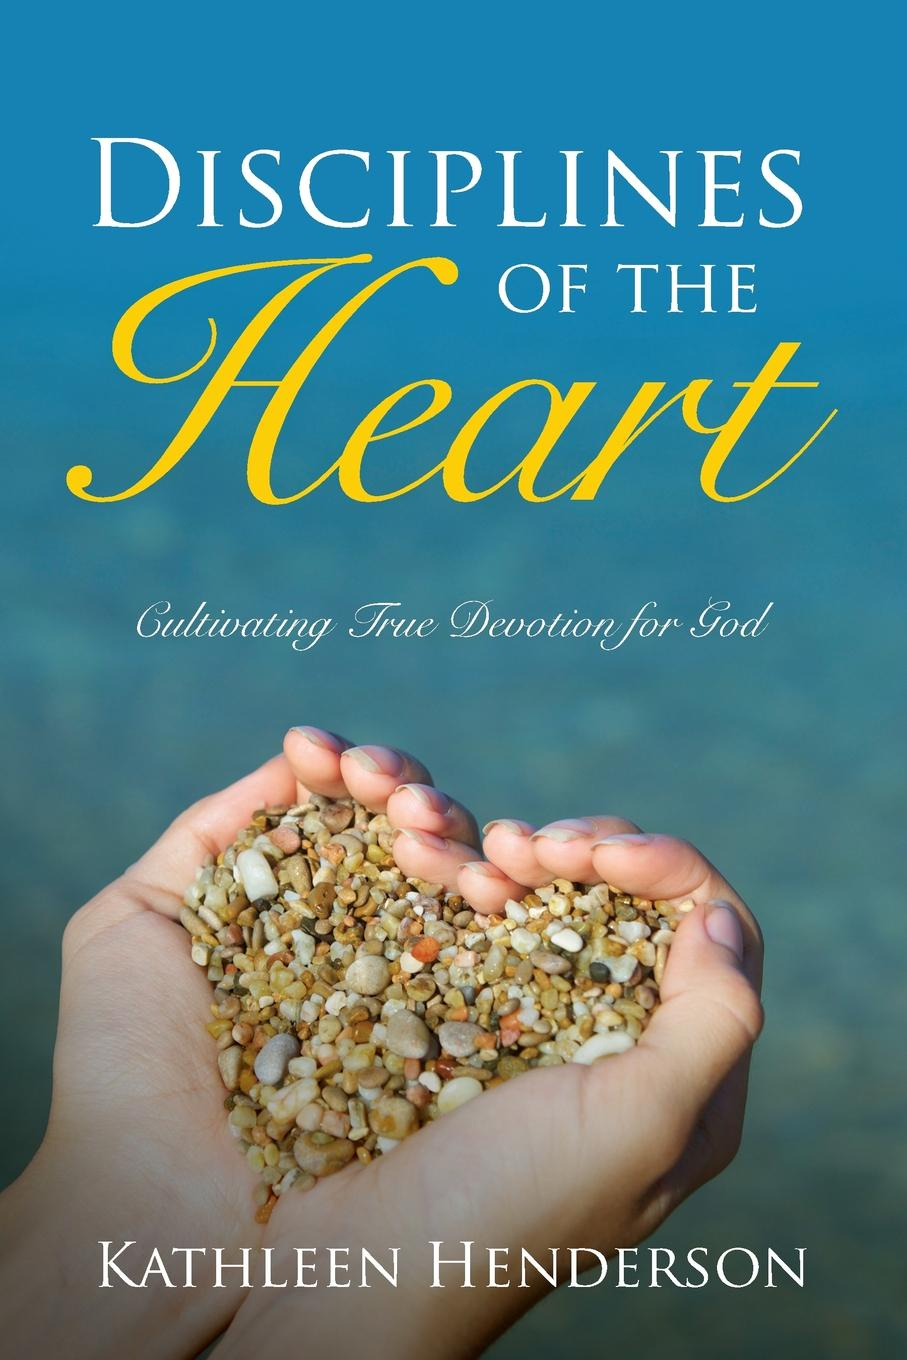 Kathleen N Henderson Disciplines of the Heart - Cultivating True Devotion for God creativity in life is directed by the heart